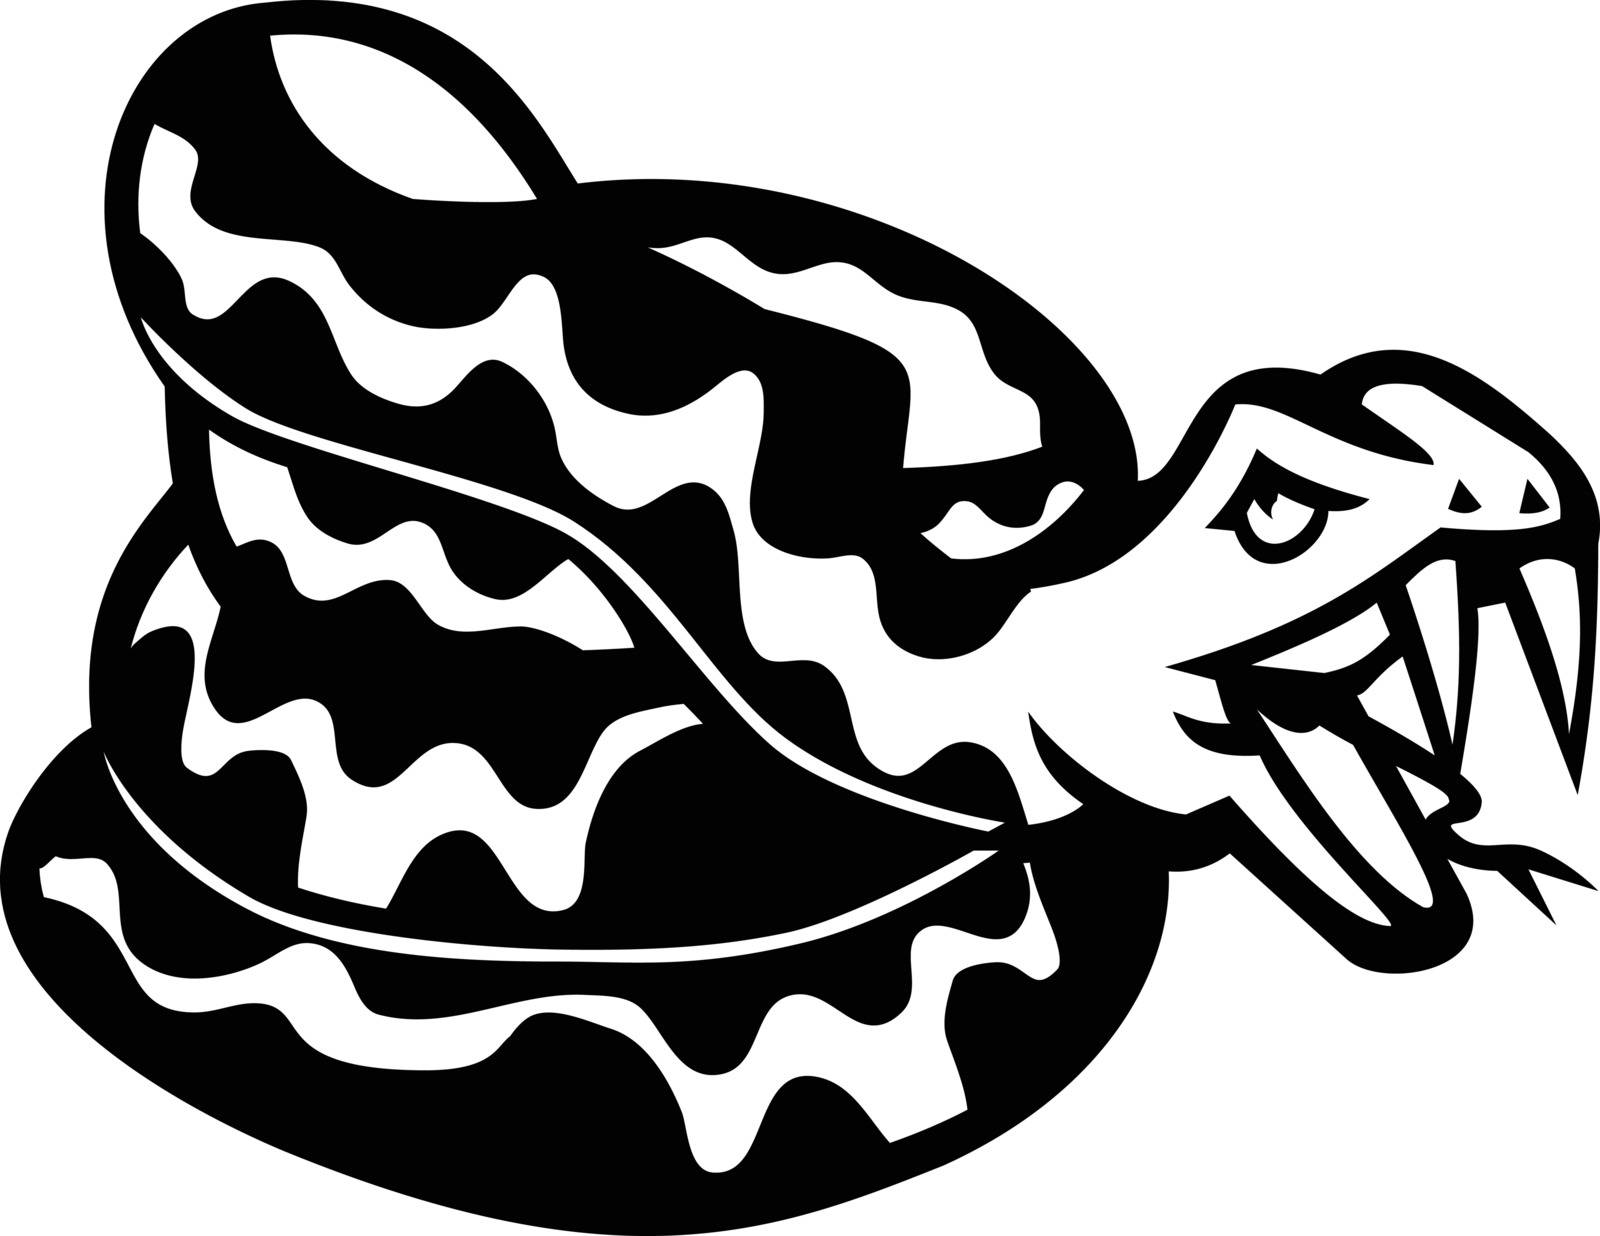 Black and white illustration of head of an aggressive coiled snake, viper or  python don't tread on me viewed from side on isolated background in retro style.